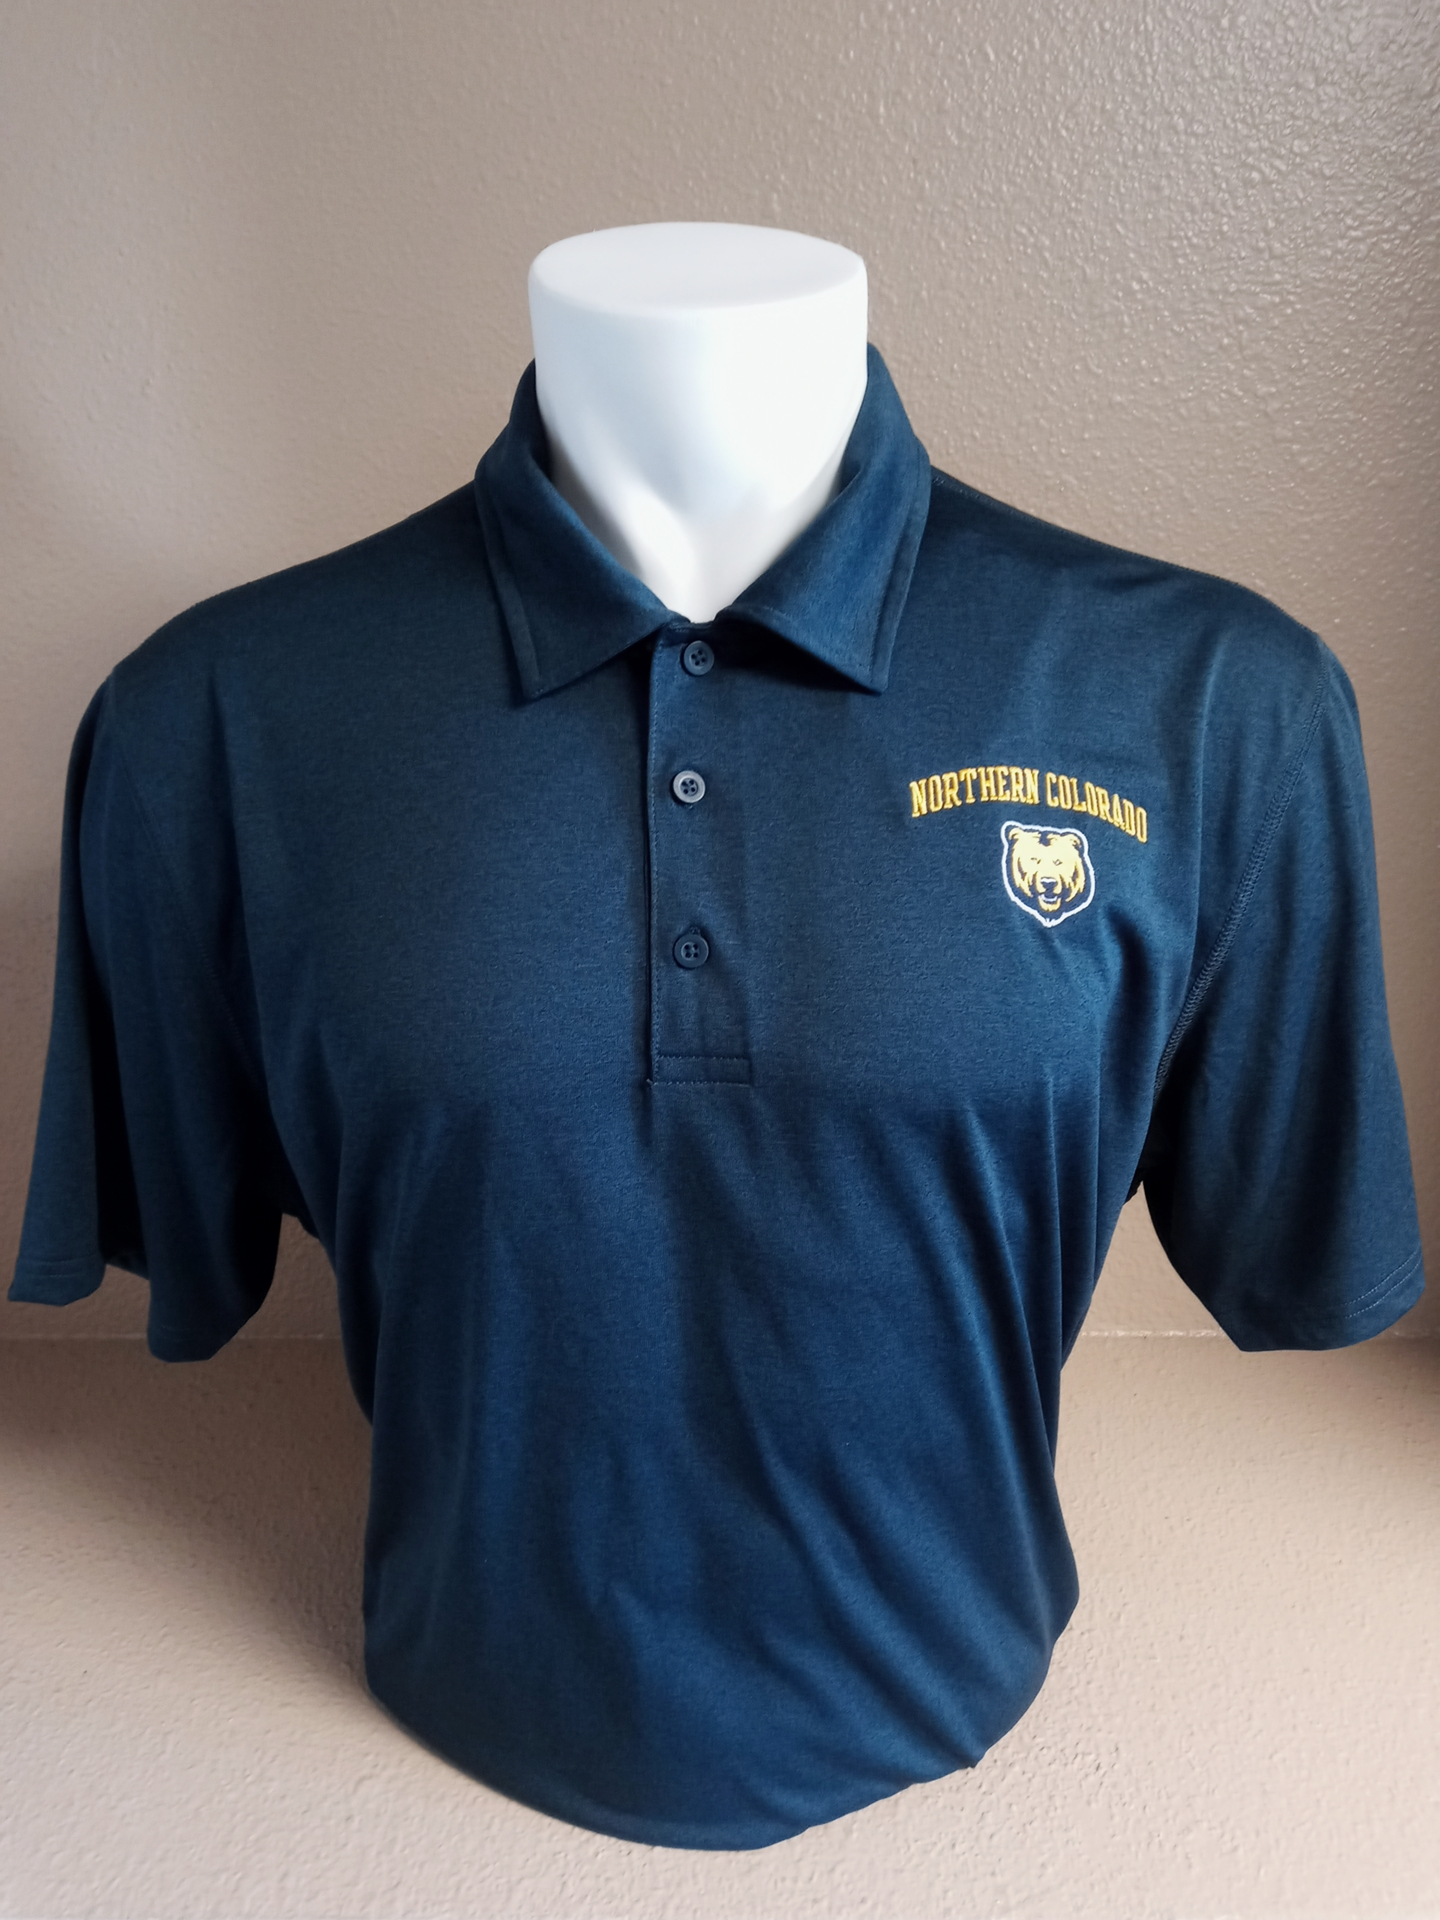 Northern Colorado Blue Polo Shirt